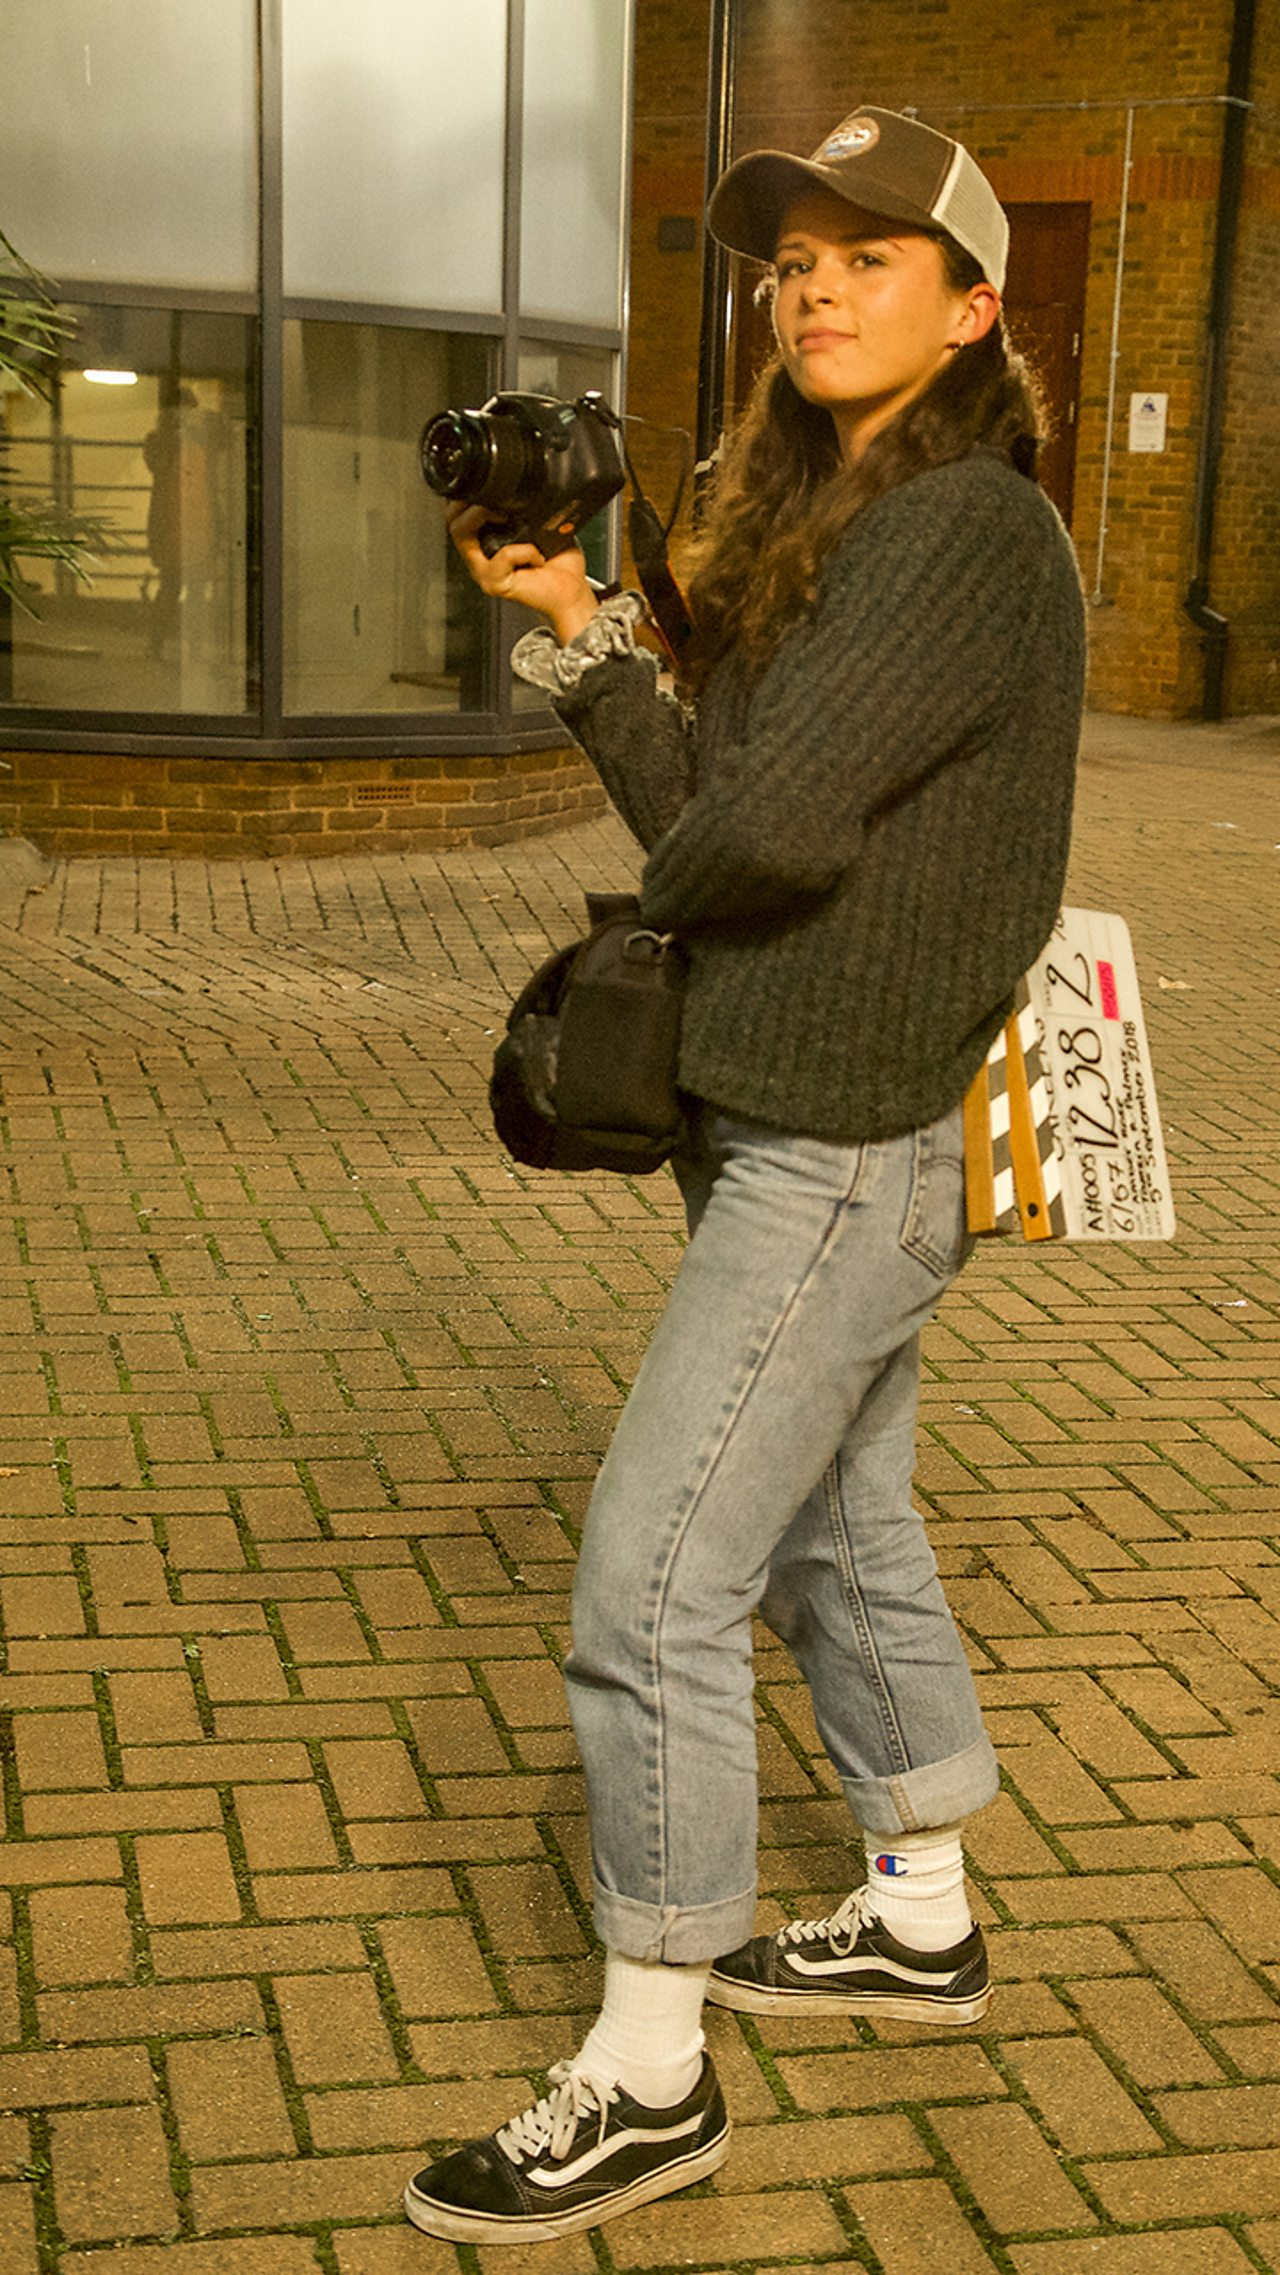 A young woman, Tamsin, standing outside with a camera and a clapper board